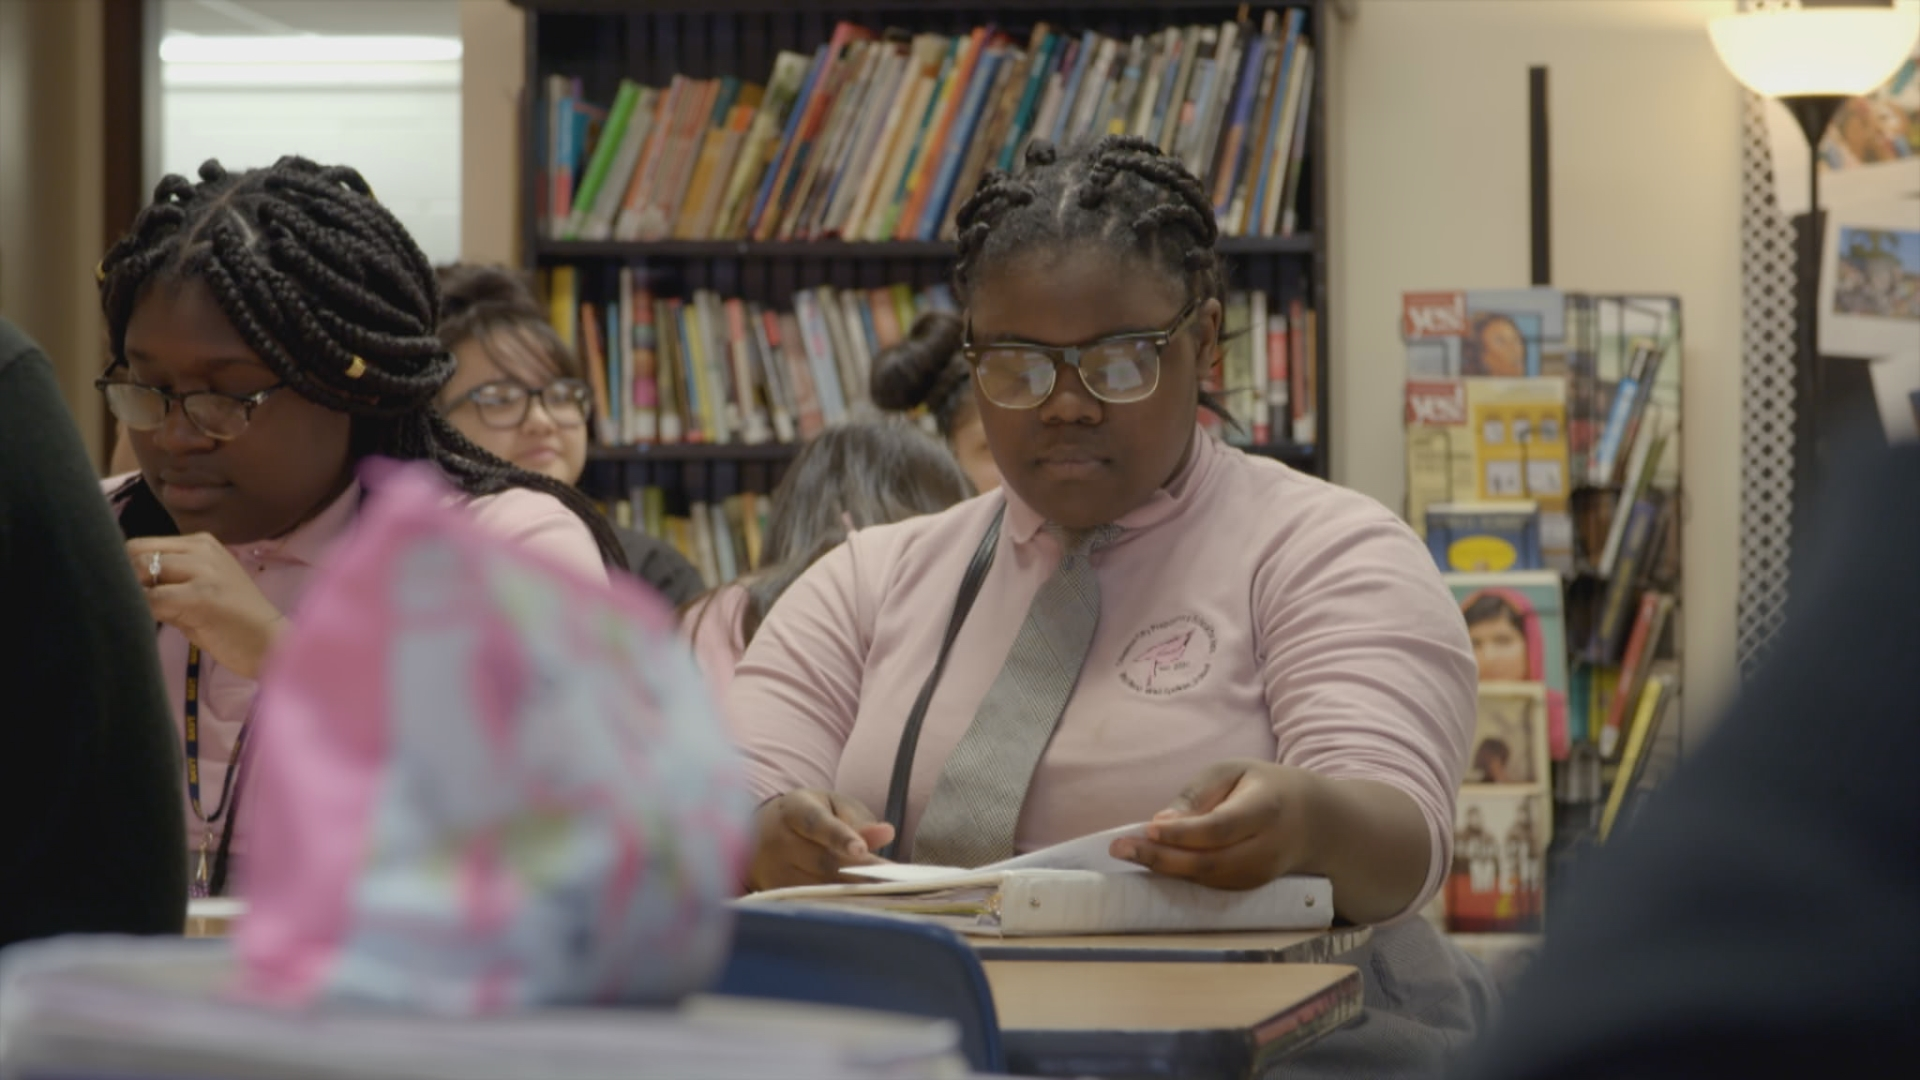 Pushout, based on the widely acclaimed book by Monique W. Morris, on confronts the ways in which the misunderstanding of Black girlhood has led to excessive punitive discipline which in turn disrupts one of the most important factors in their lives: their education.